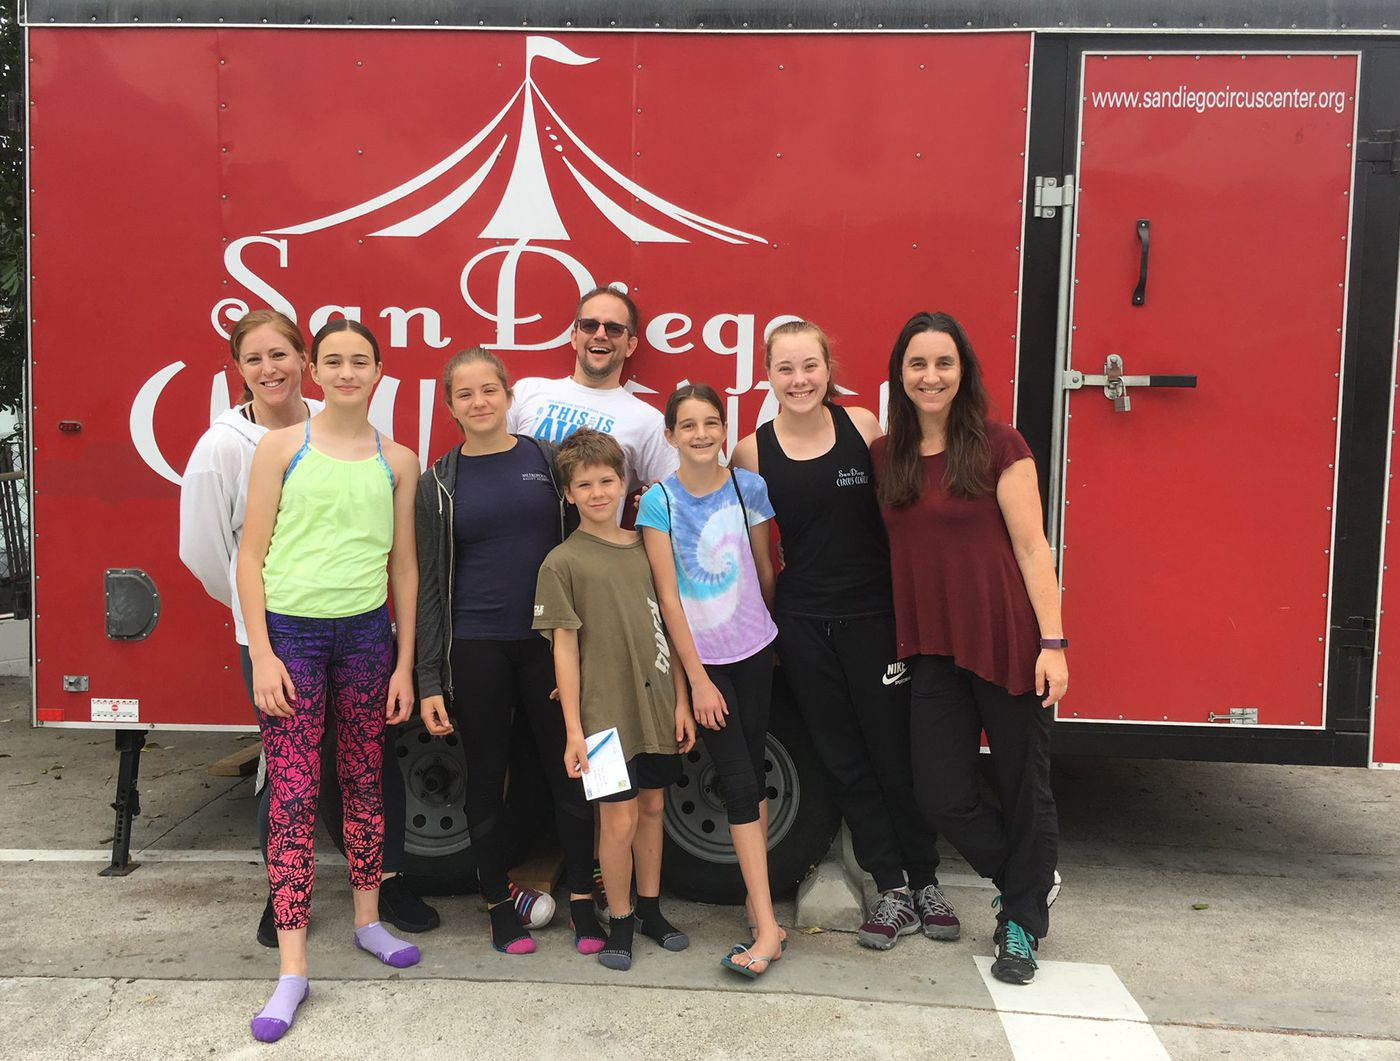 Representatives from the Philadelphia School of Circus Arts included (from left) coach Karen Ladd, Gretta Maguire, Mara Sell, coach Adam Woolley, Jonas Sell, Isa Kennedy, Bronyn Mazlo, and parent Shana Kennedy.